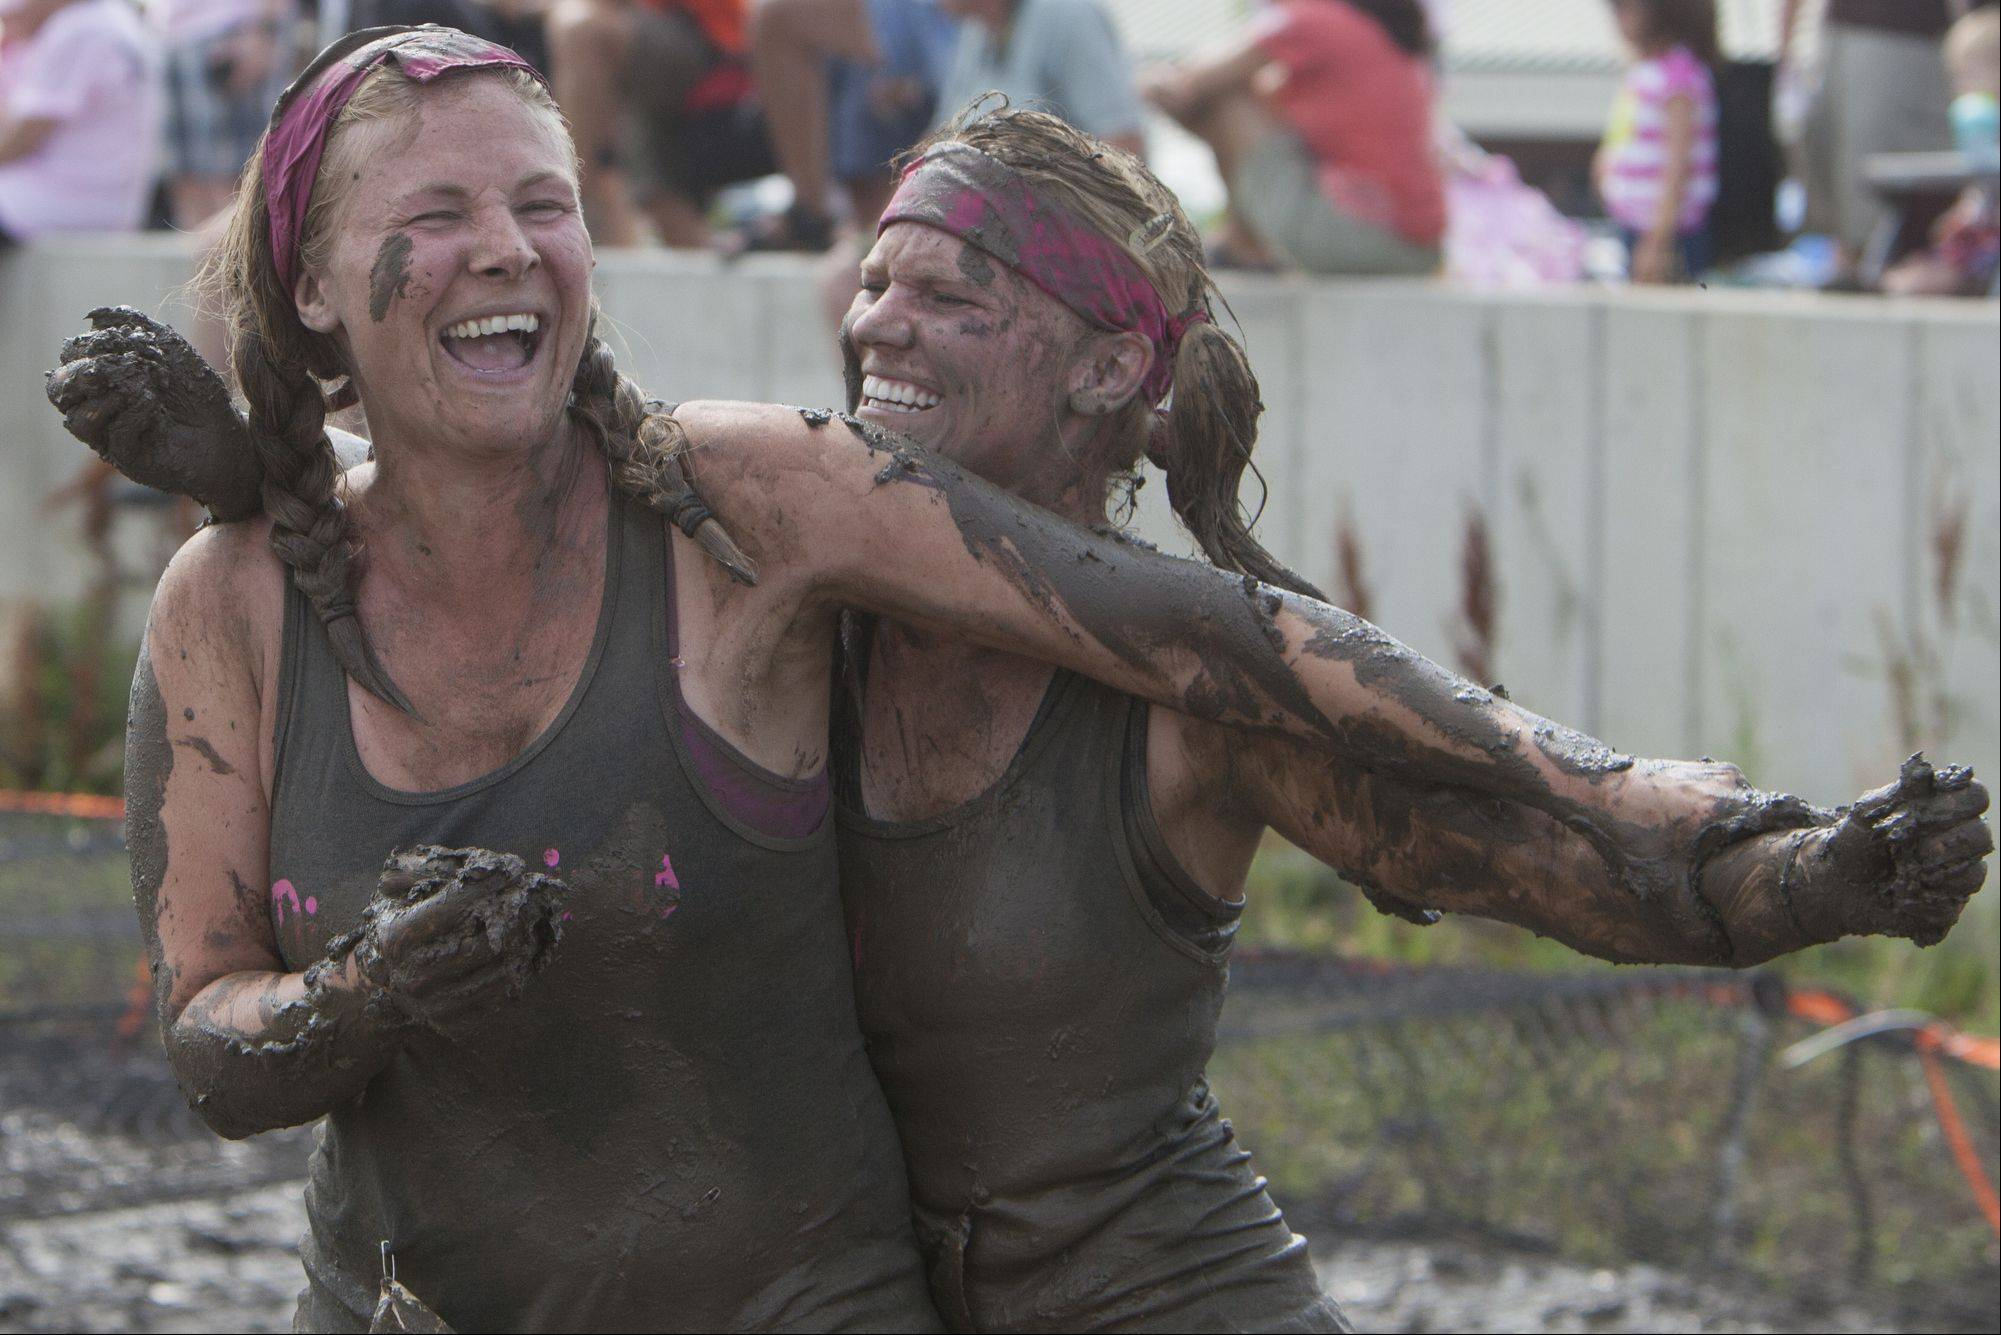 Lauren Schultz of Grayslake and Lindey Skelley of Wauconda wipe mud on each other during the Dirty Girl Mud Run.